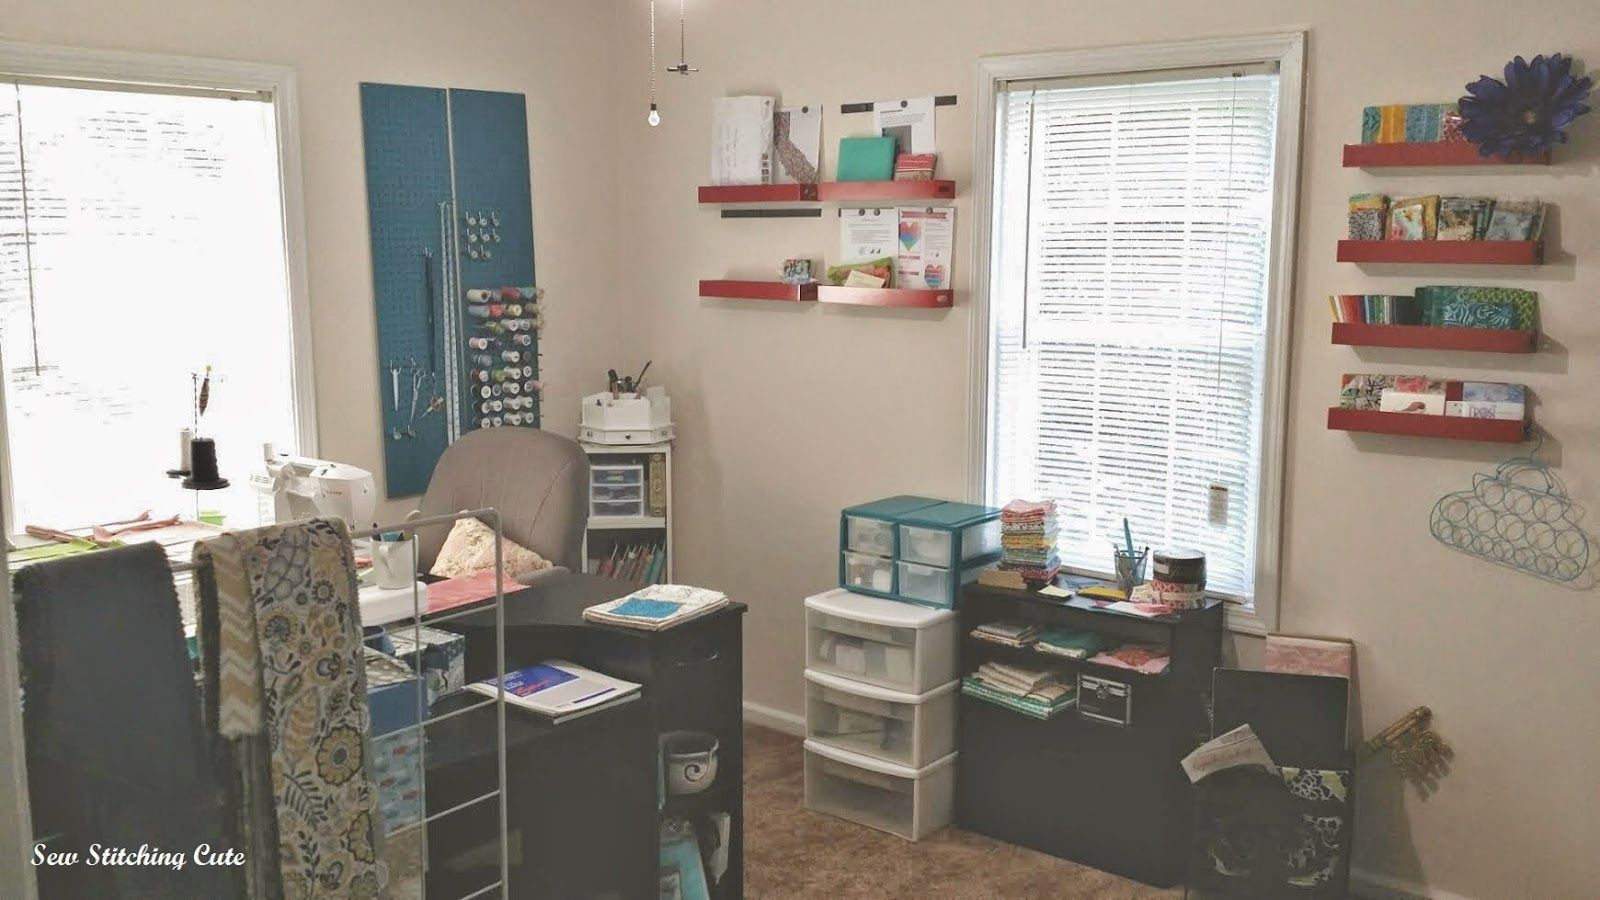 Sewing Room Upgrade and Bedroom Downgrade: Sew Stitching Cute - Quilt Blog